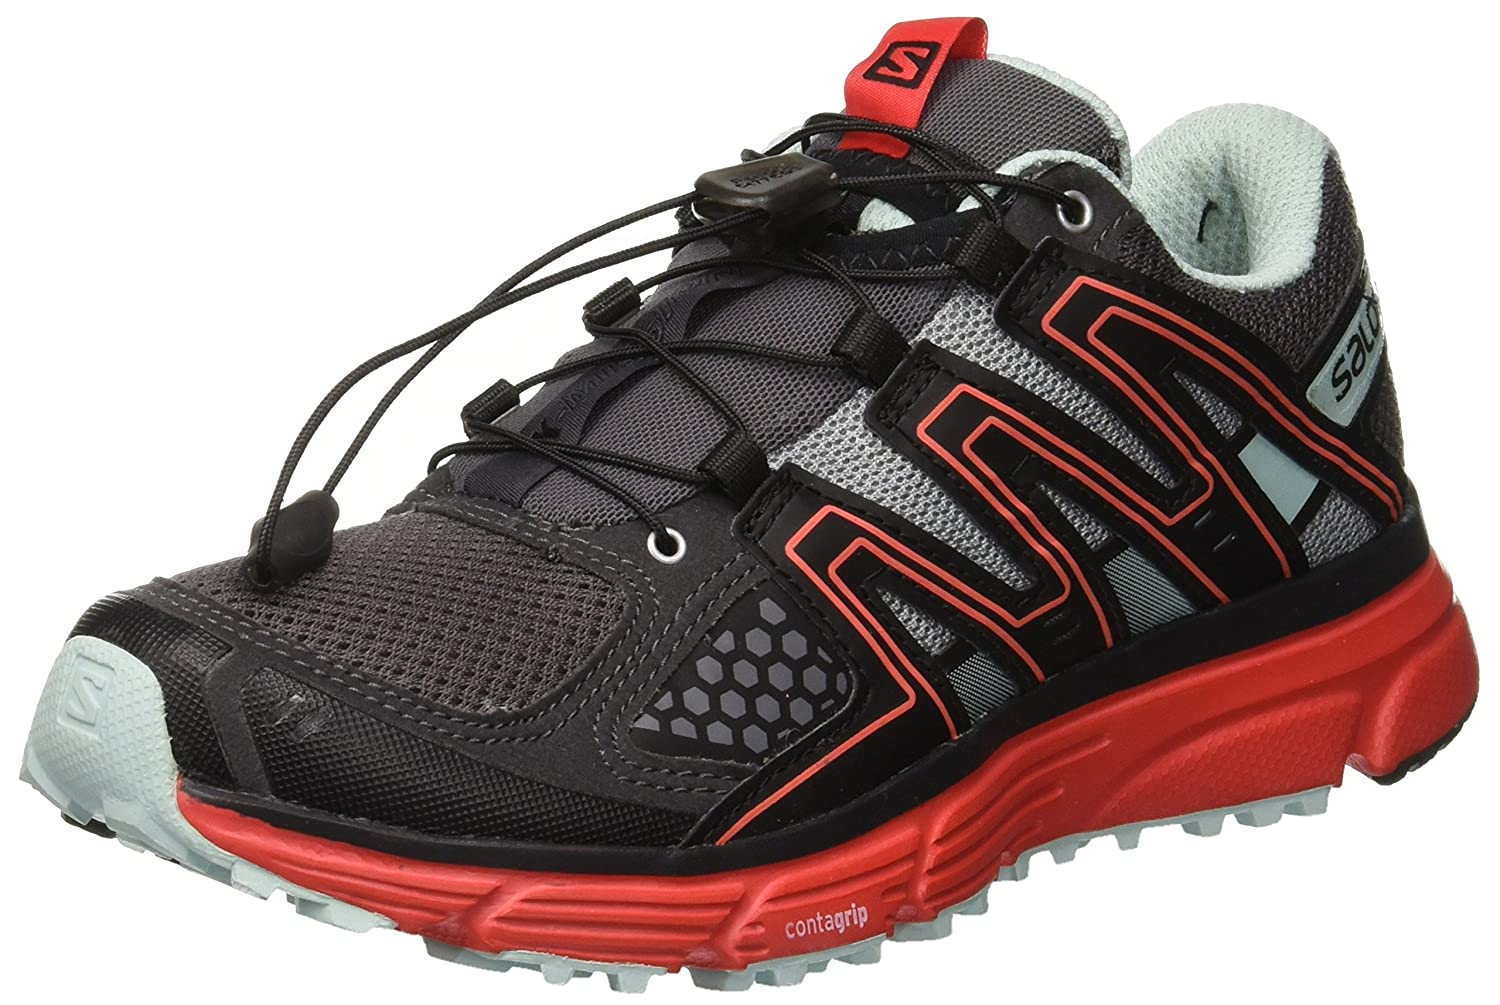 Salomon Women's X-Mission 3 W-w B078SYZF9Y 5 M US|Magnet/Black/Poppy Red